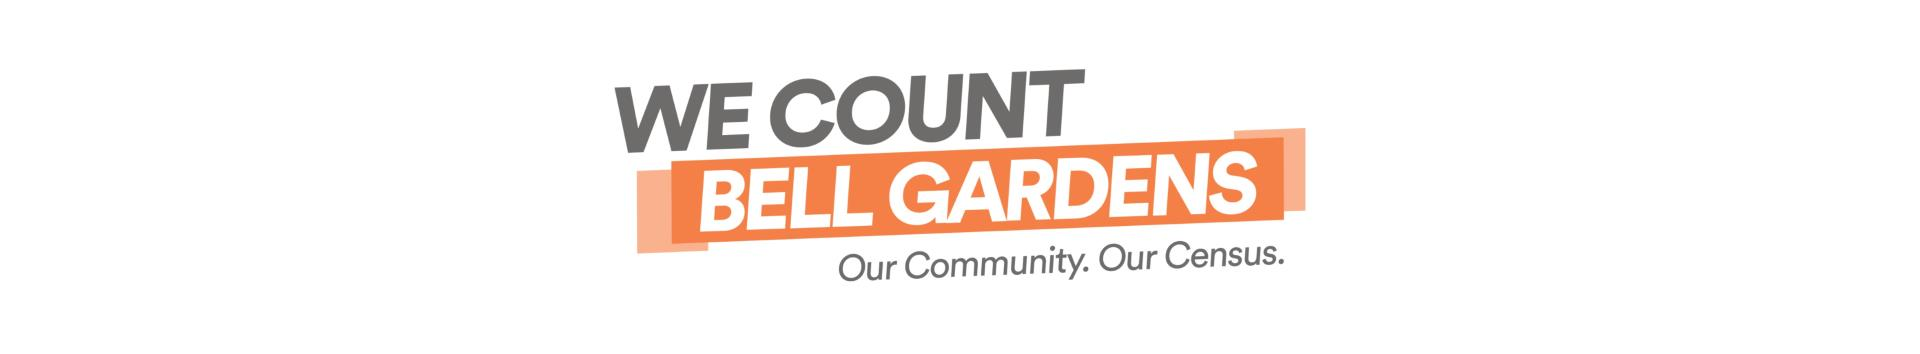 We Count Bell Gardens Website Banner ENG1